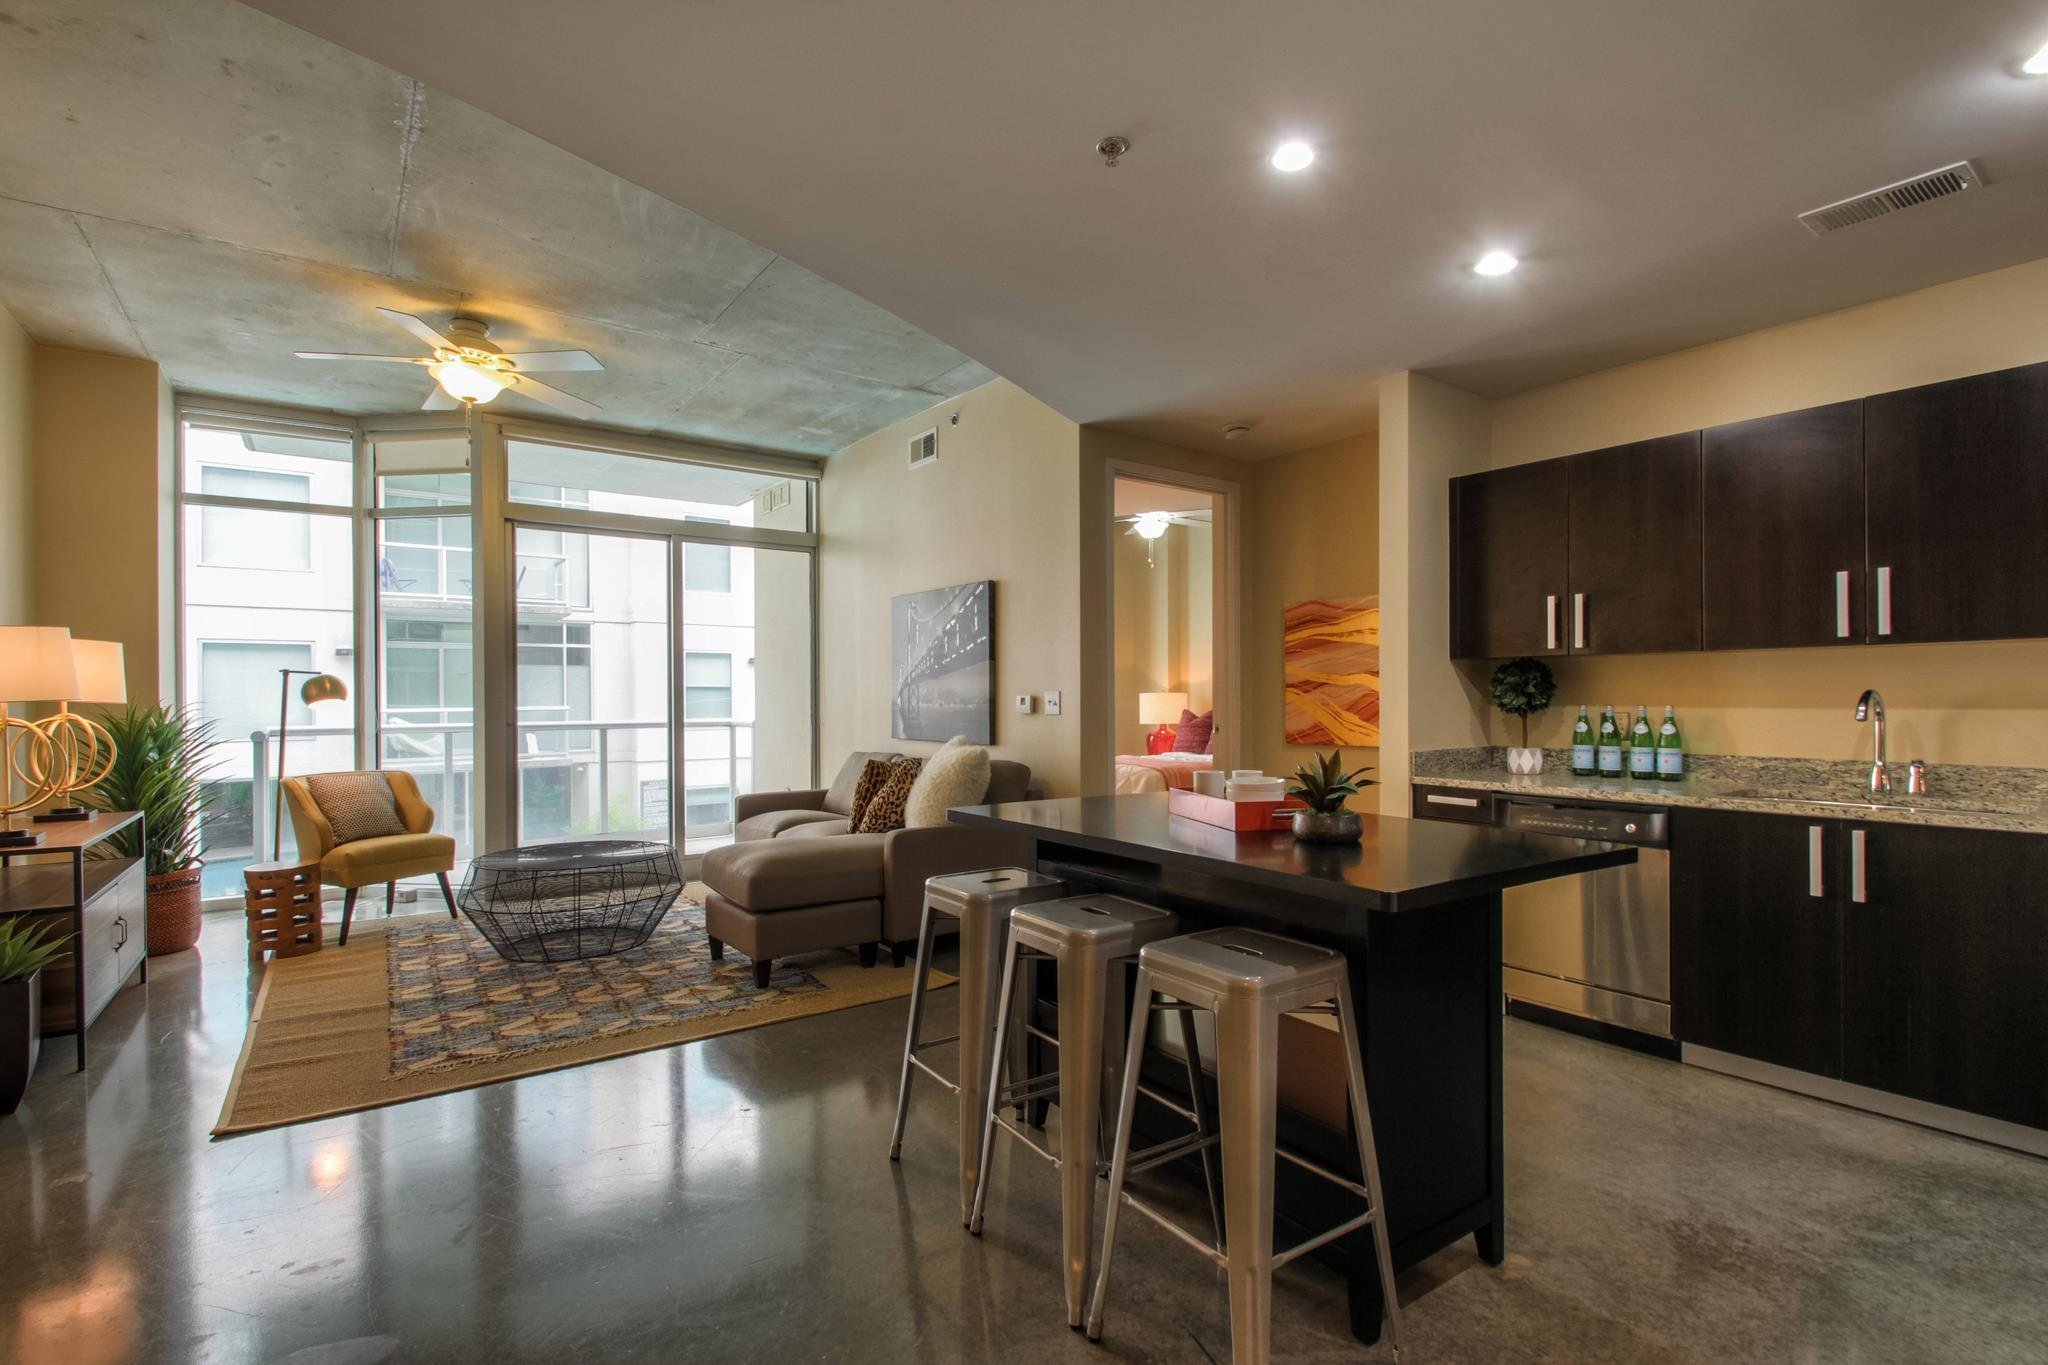 600 12Th Ave S Apt 519, Nashville - Midtown, Tennessee